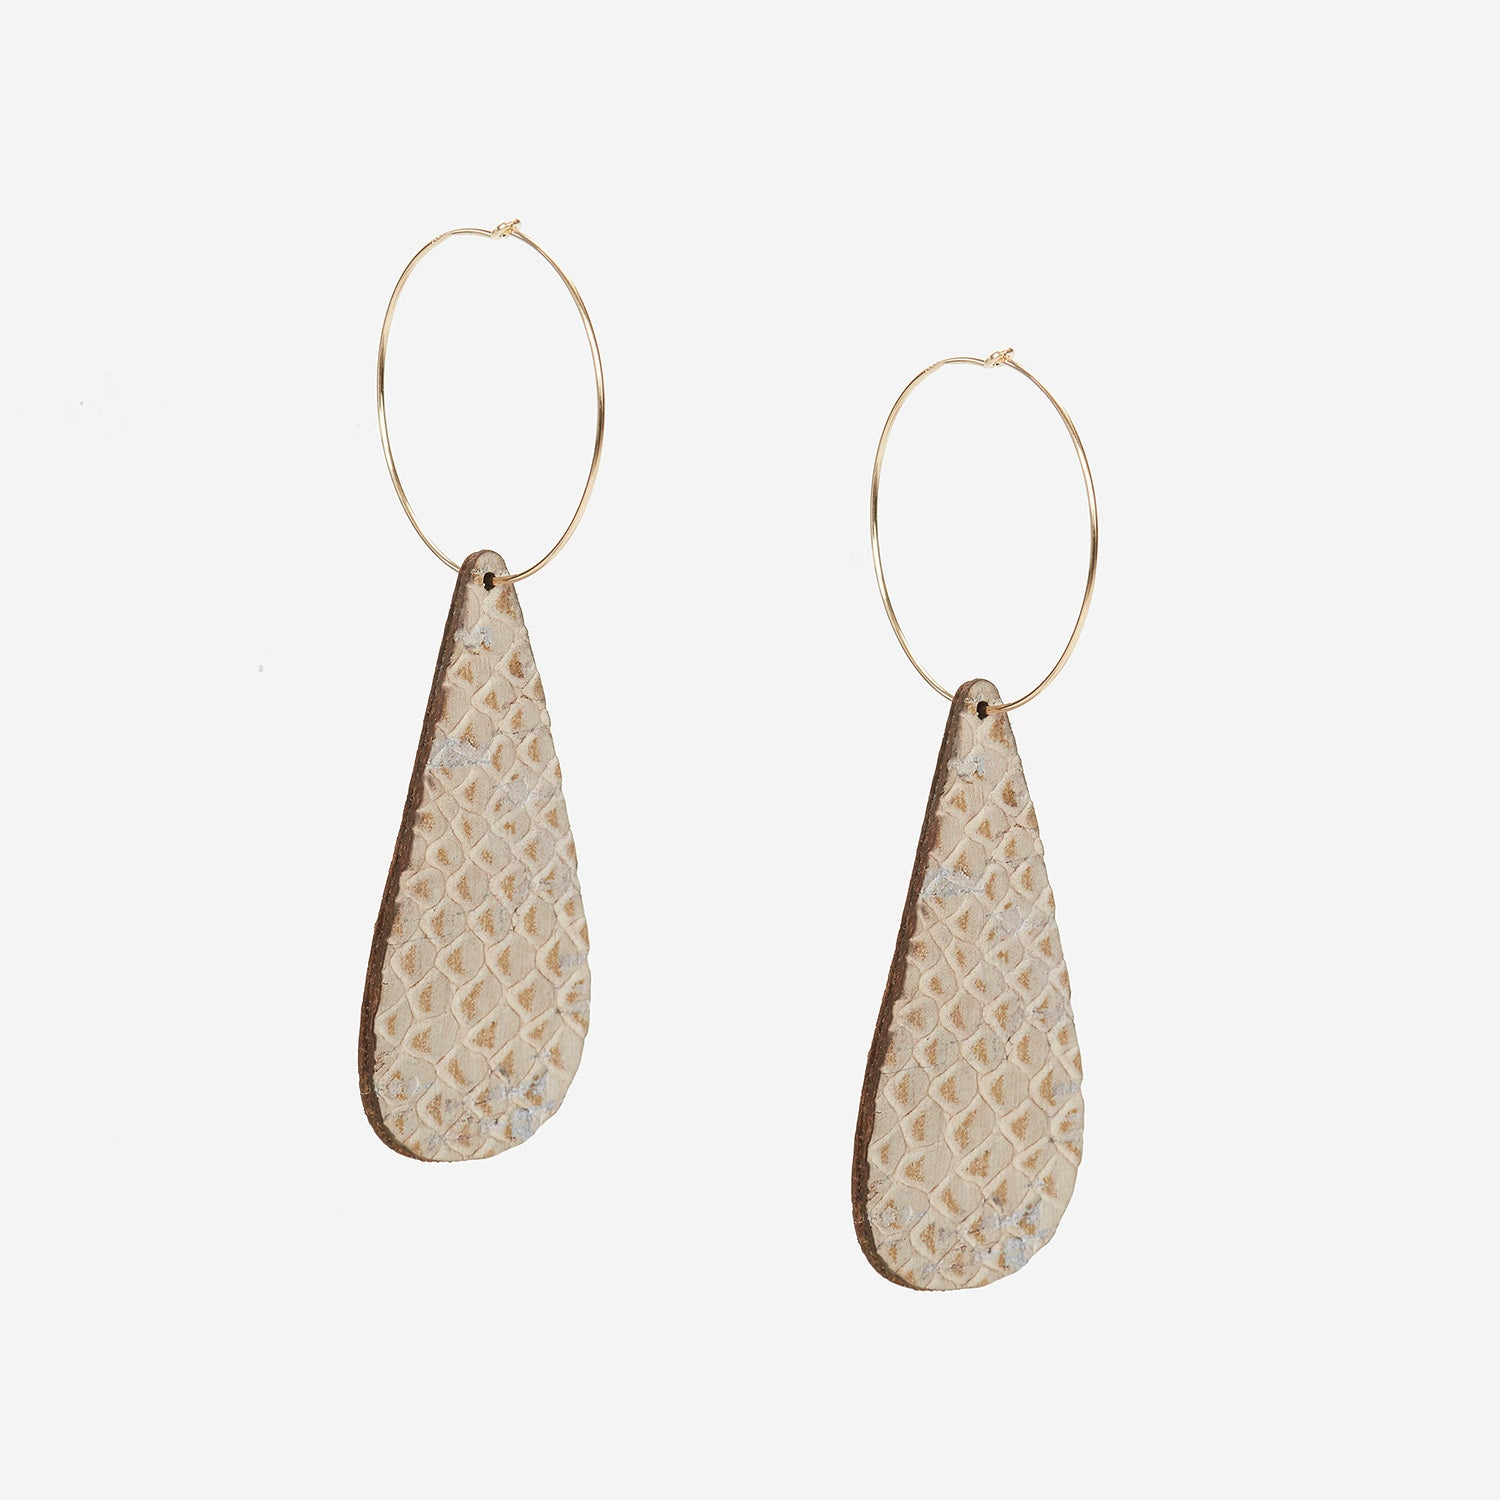 Remi Reversible Cork Earrings – Teardrop